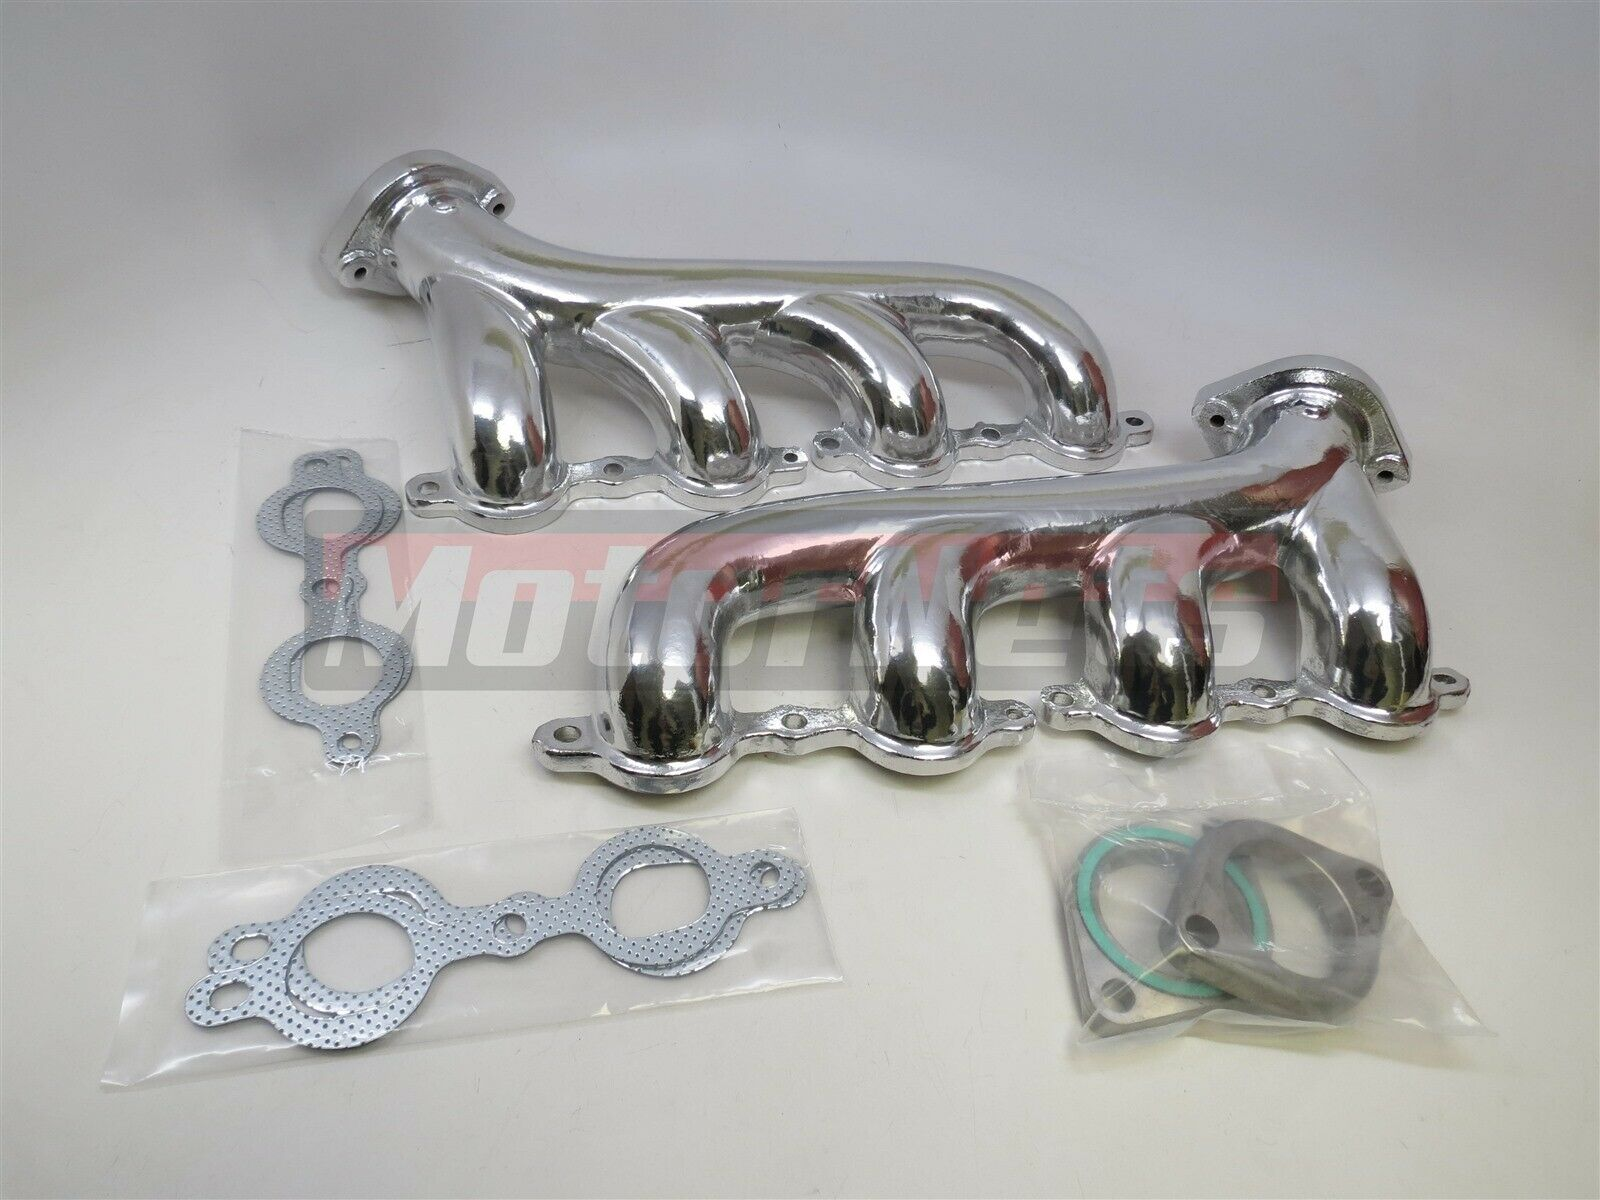 LS Cast Iron Exhaust Manifold Headers Chevrolet Corvette Camaro LS1 LS2 LS3 8501